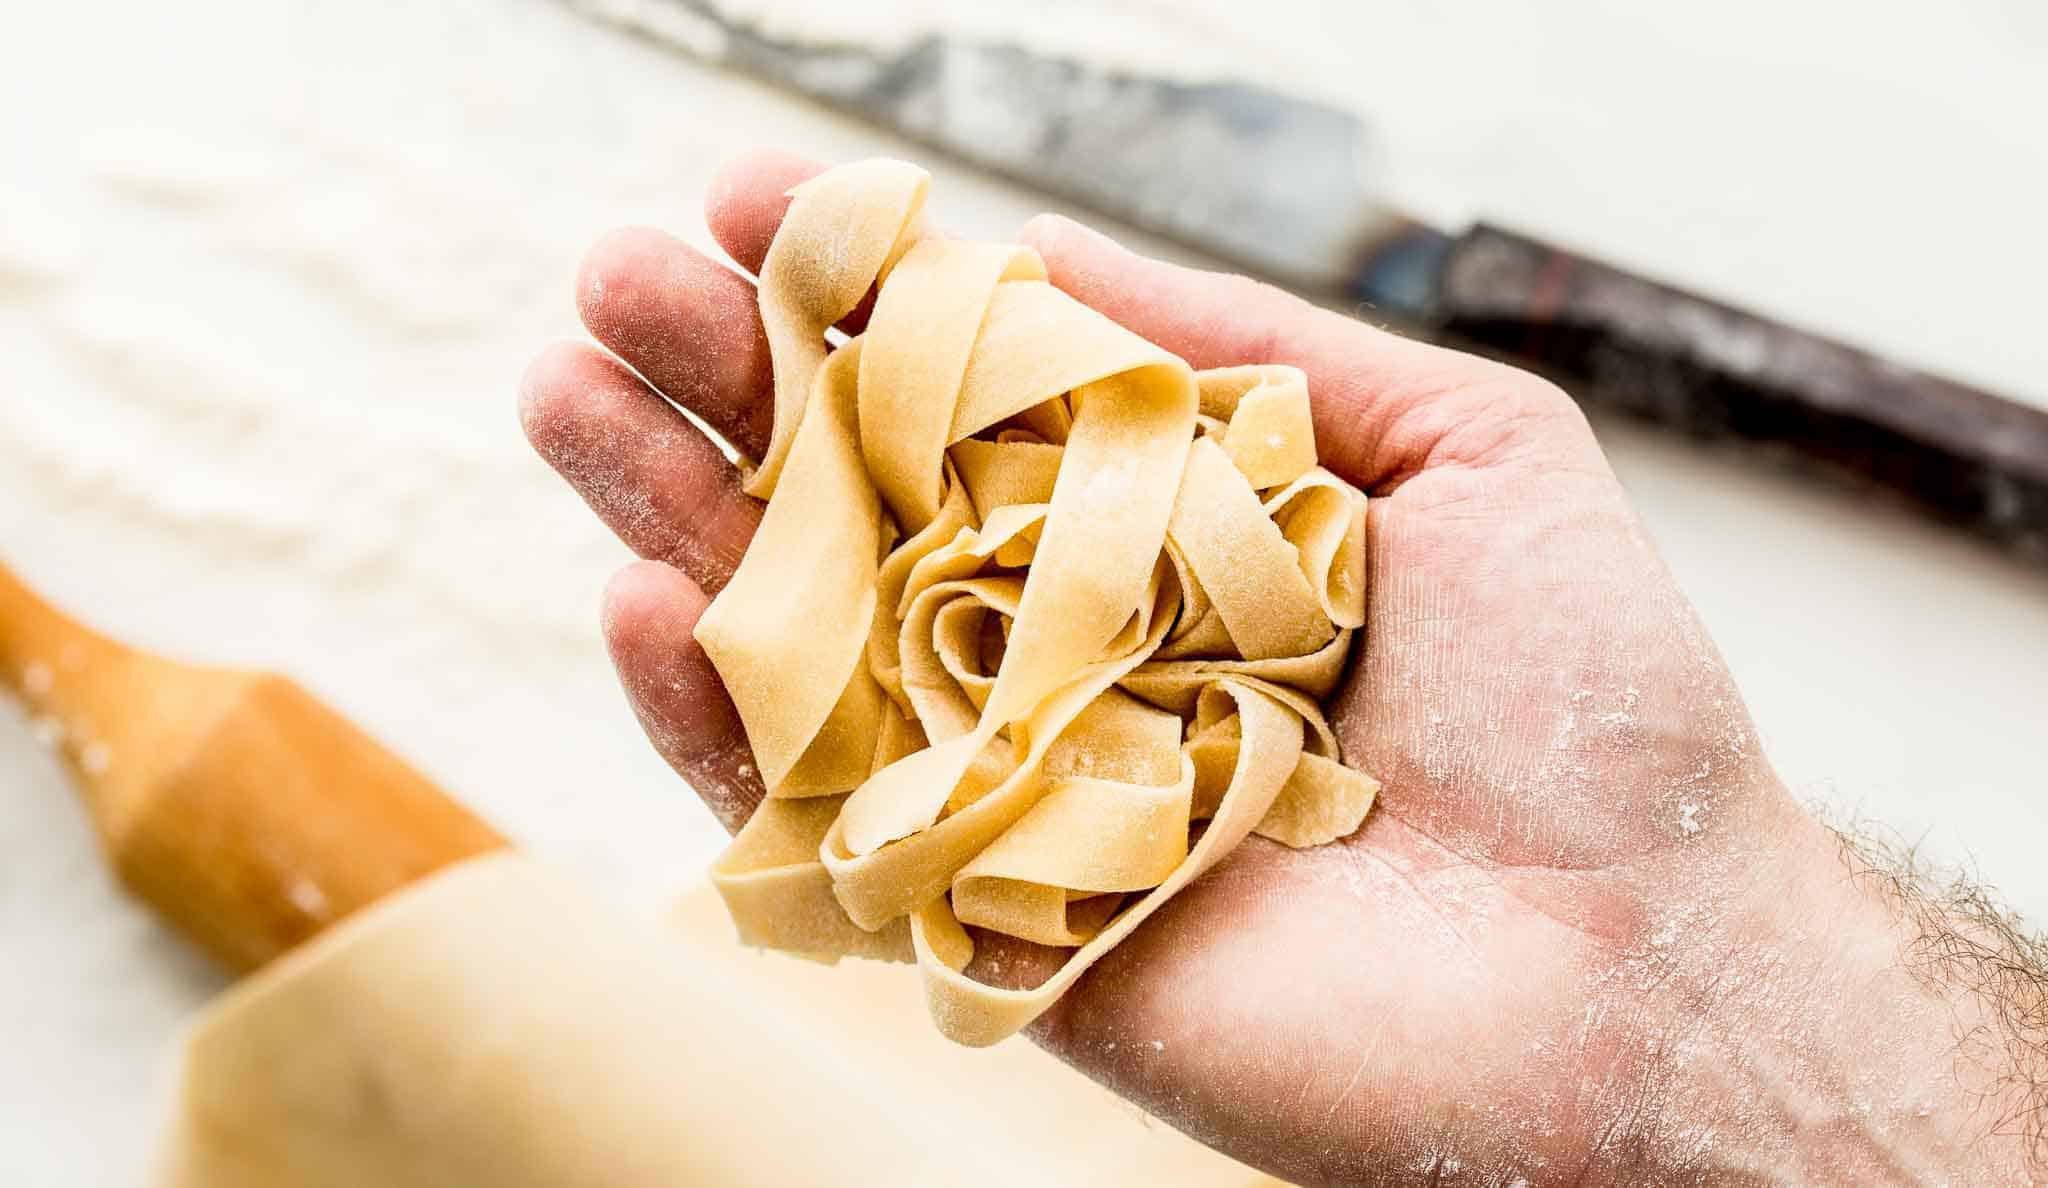 Easy 2 ingredient no-knead homemade pasta